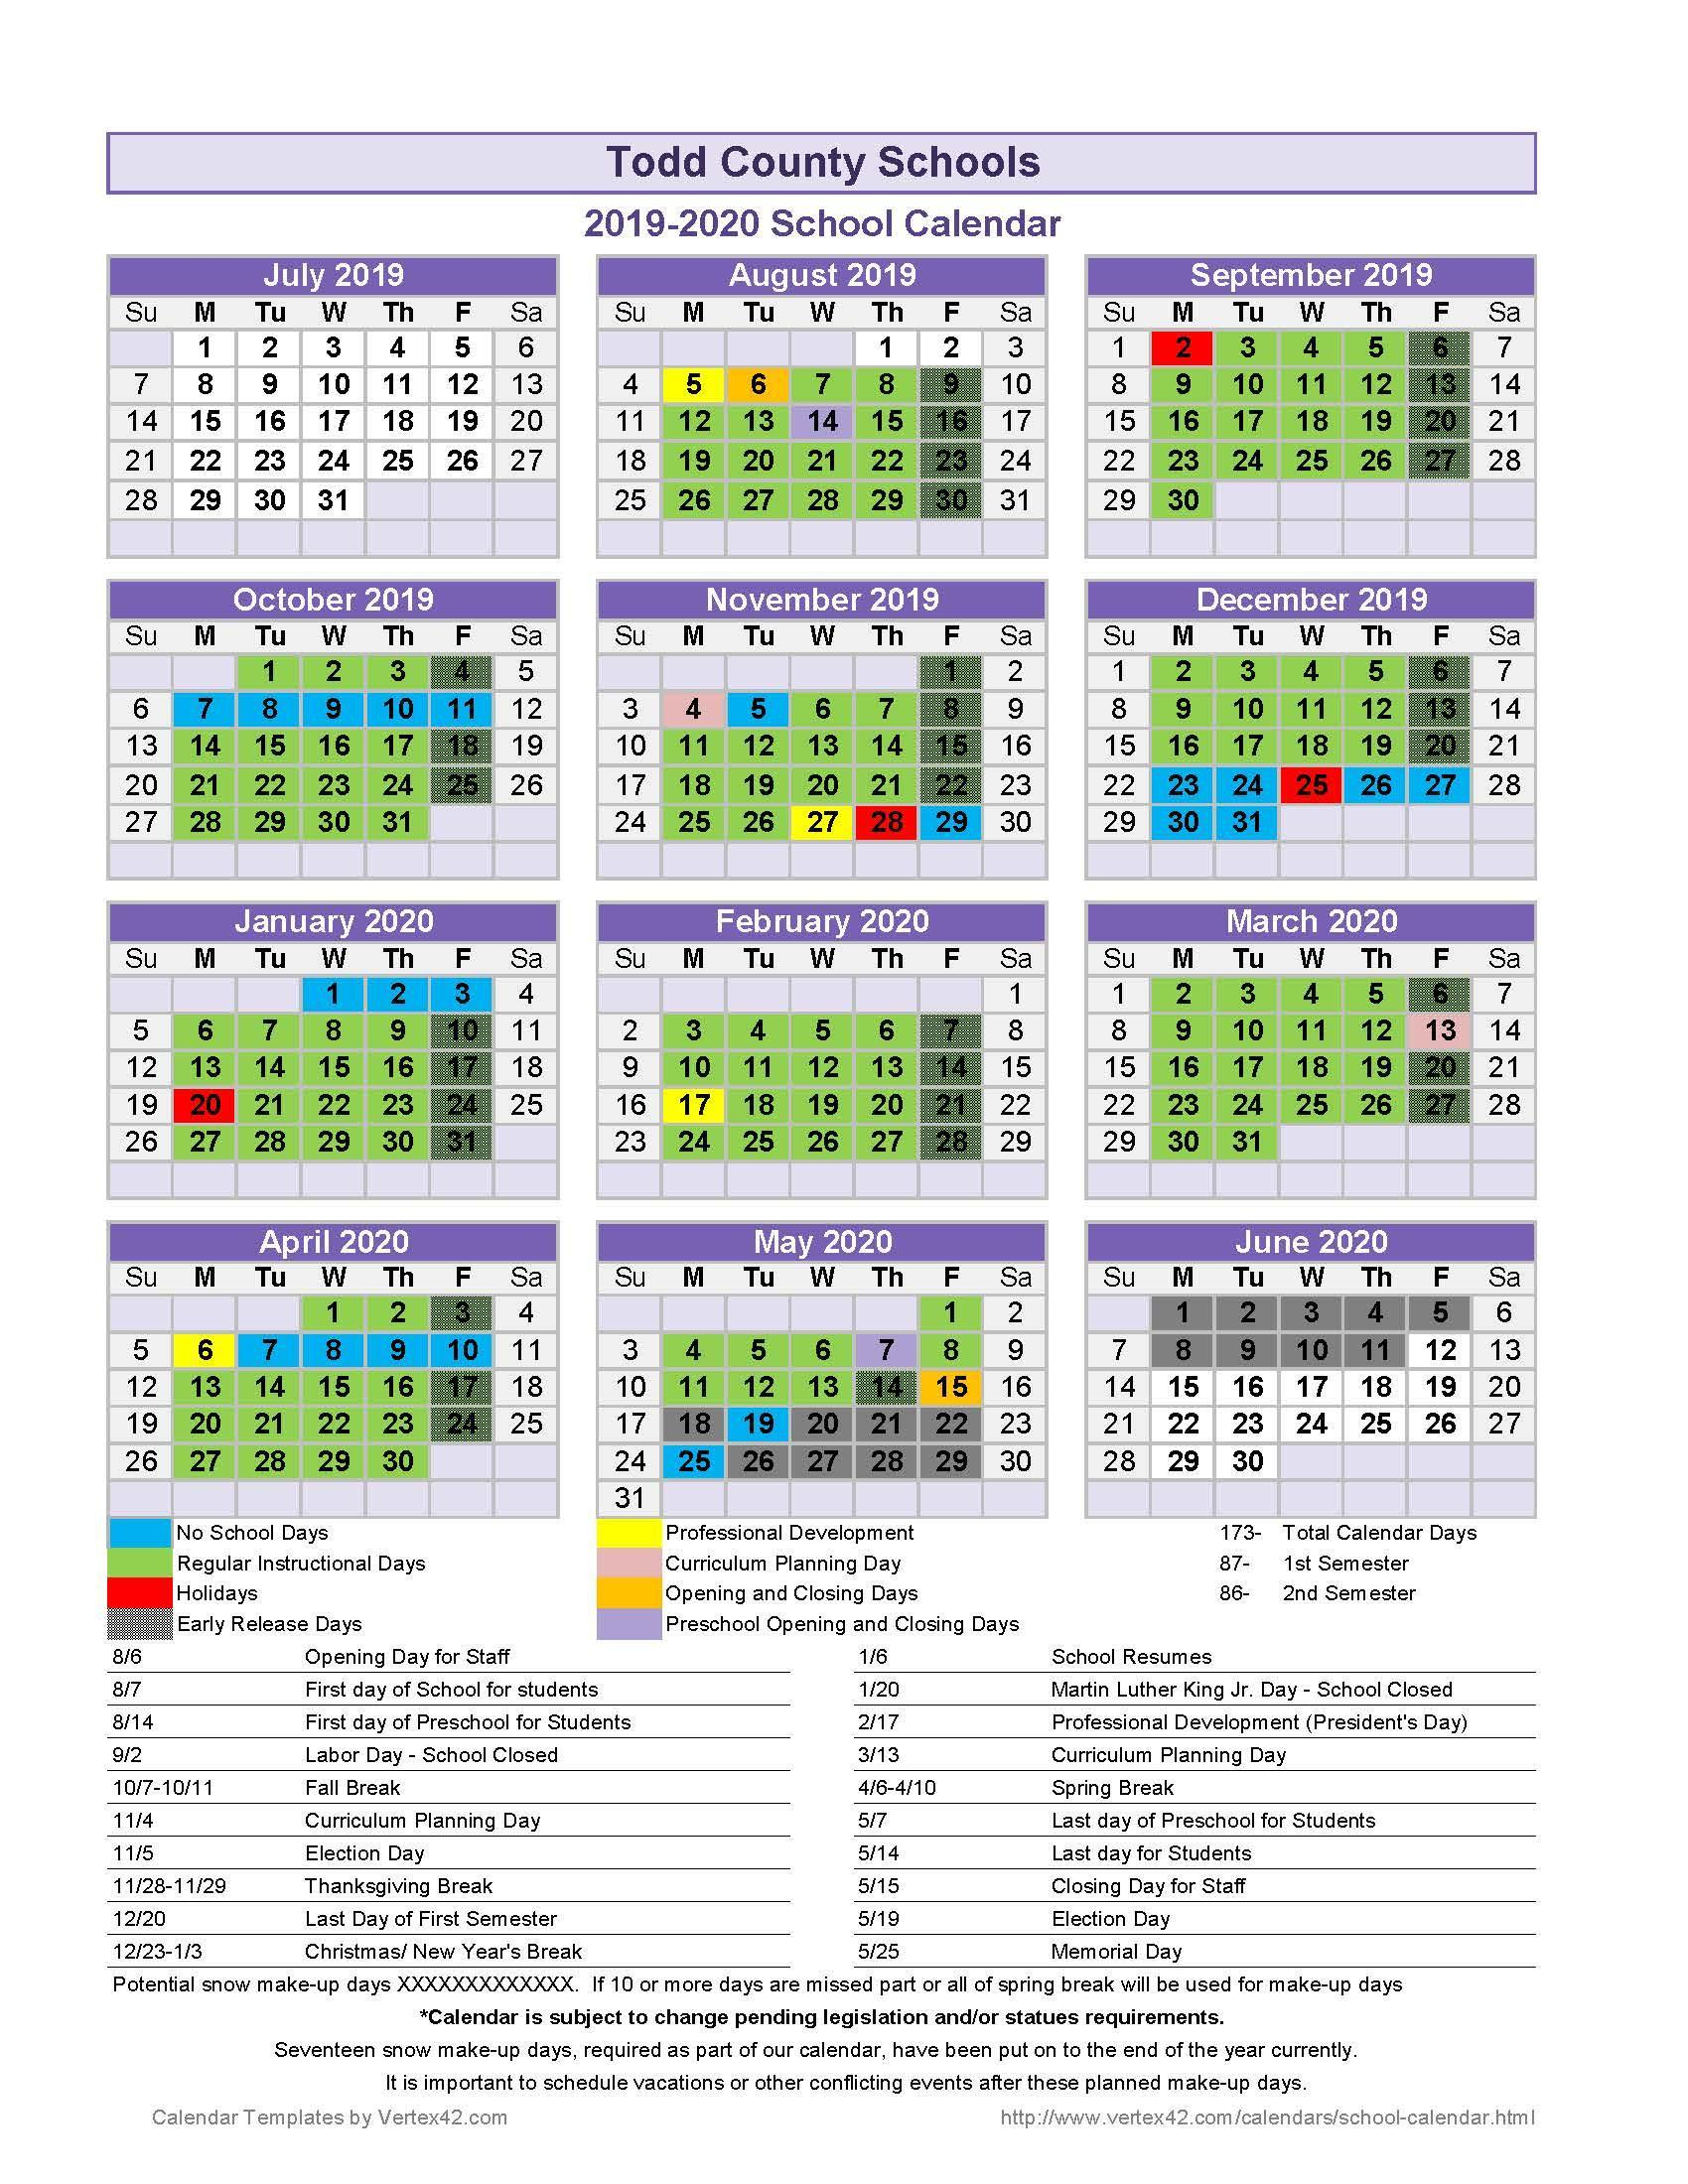 Todd County Central High School Pertaining To Davidson County Tn School Calender